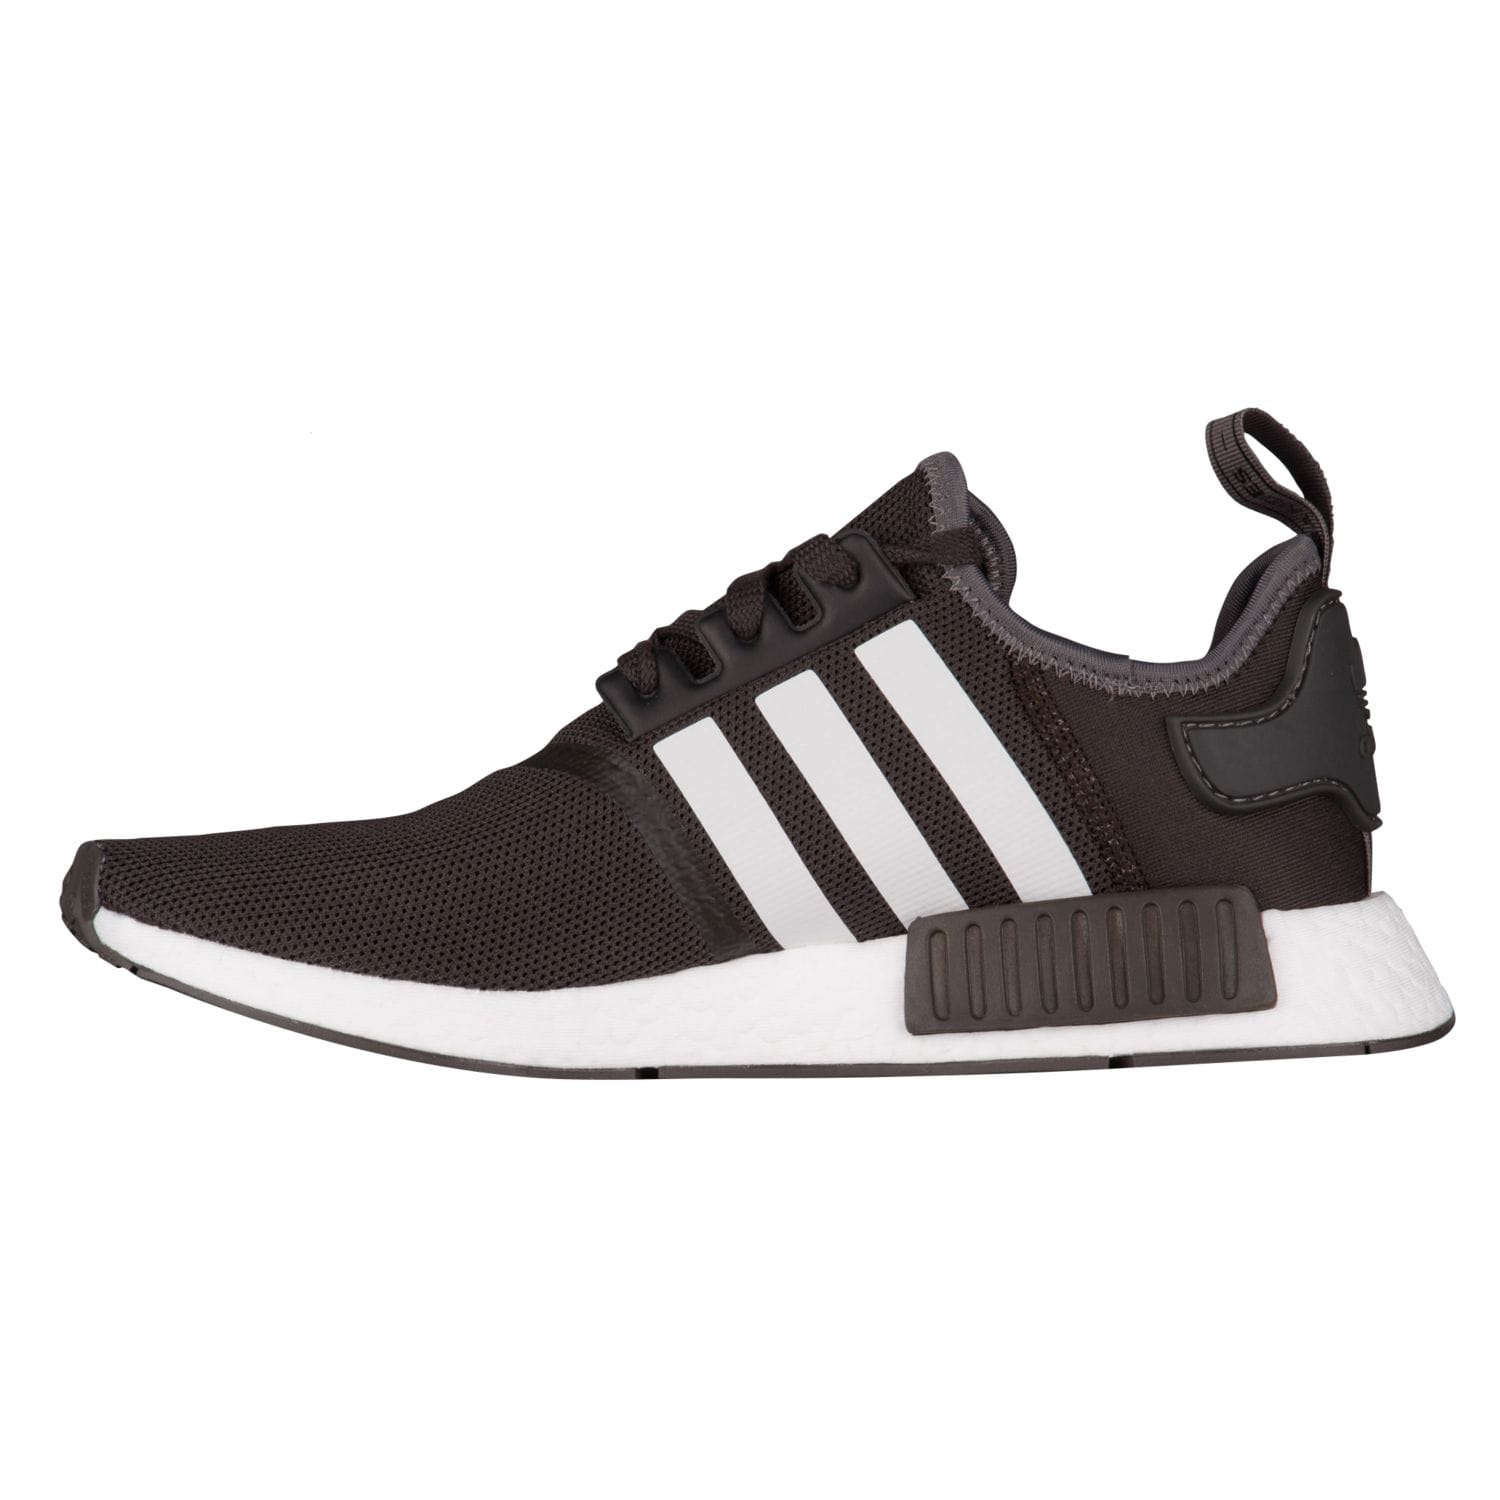 adidas originals nmd r1 men's